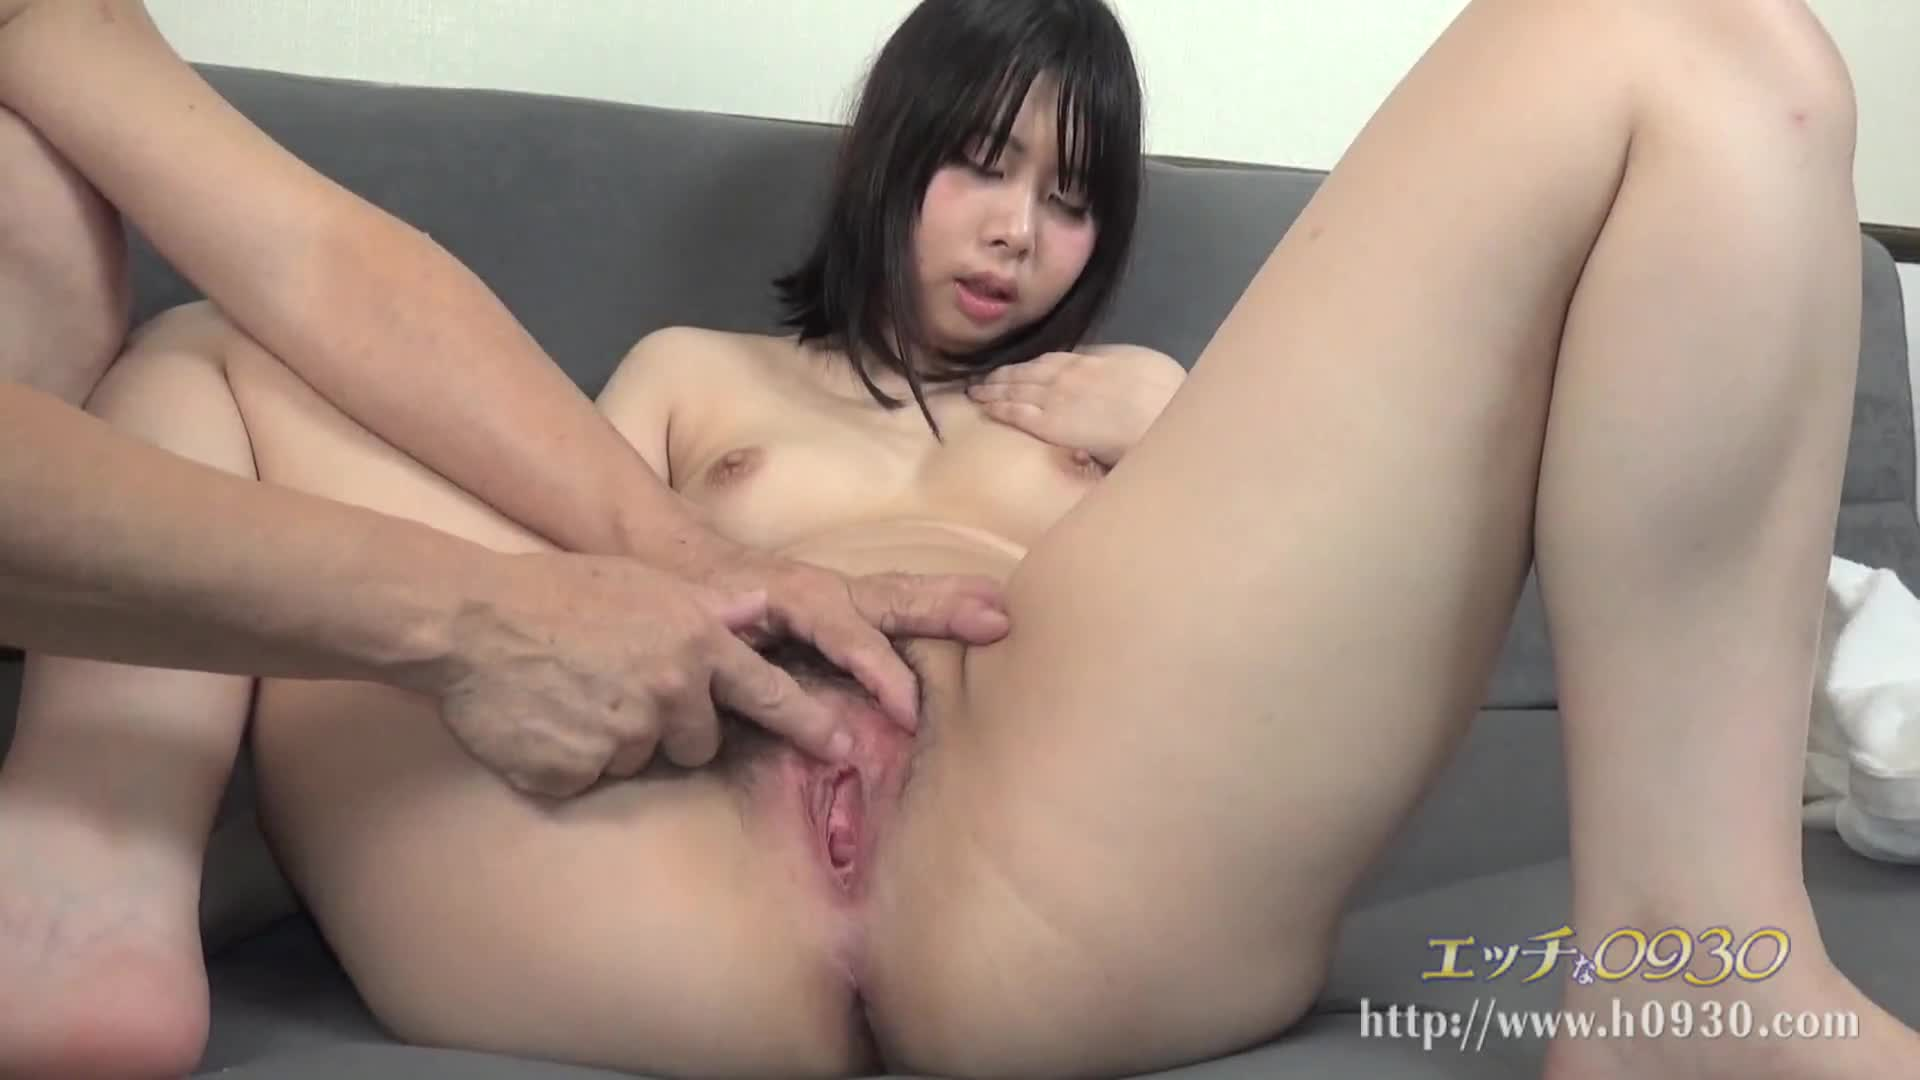 Aoi mizuno 06 japanese beauties - 3 part 6